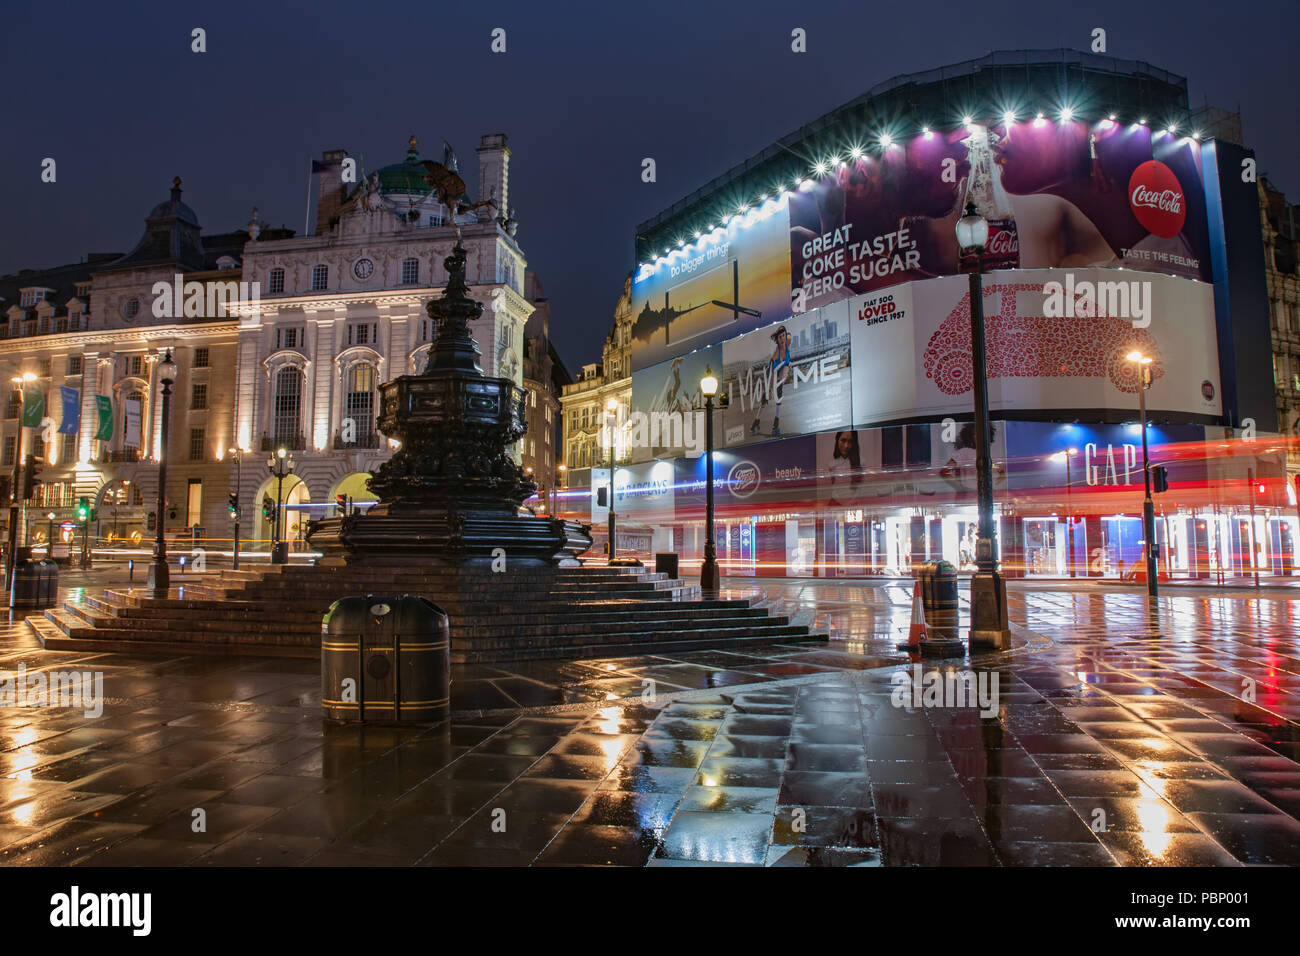 Piccadilly Circus, London-September 8,2017: Fountain in Piccadilly Circus in rainy early morning time on September 8, 2017 in London, United Kingdom - Stock Image